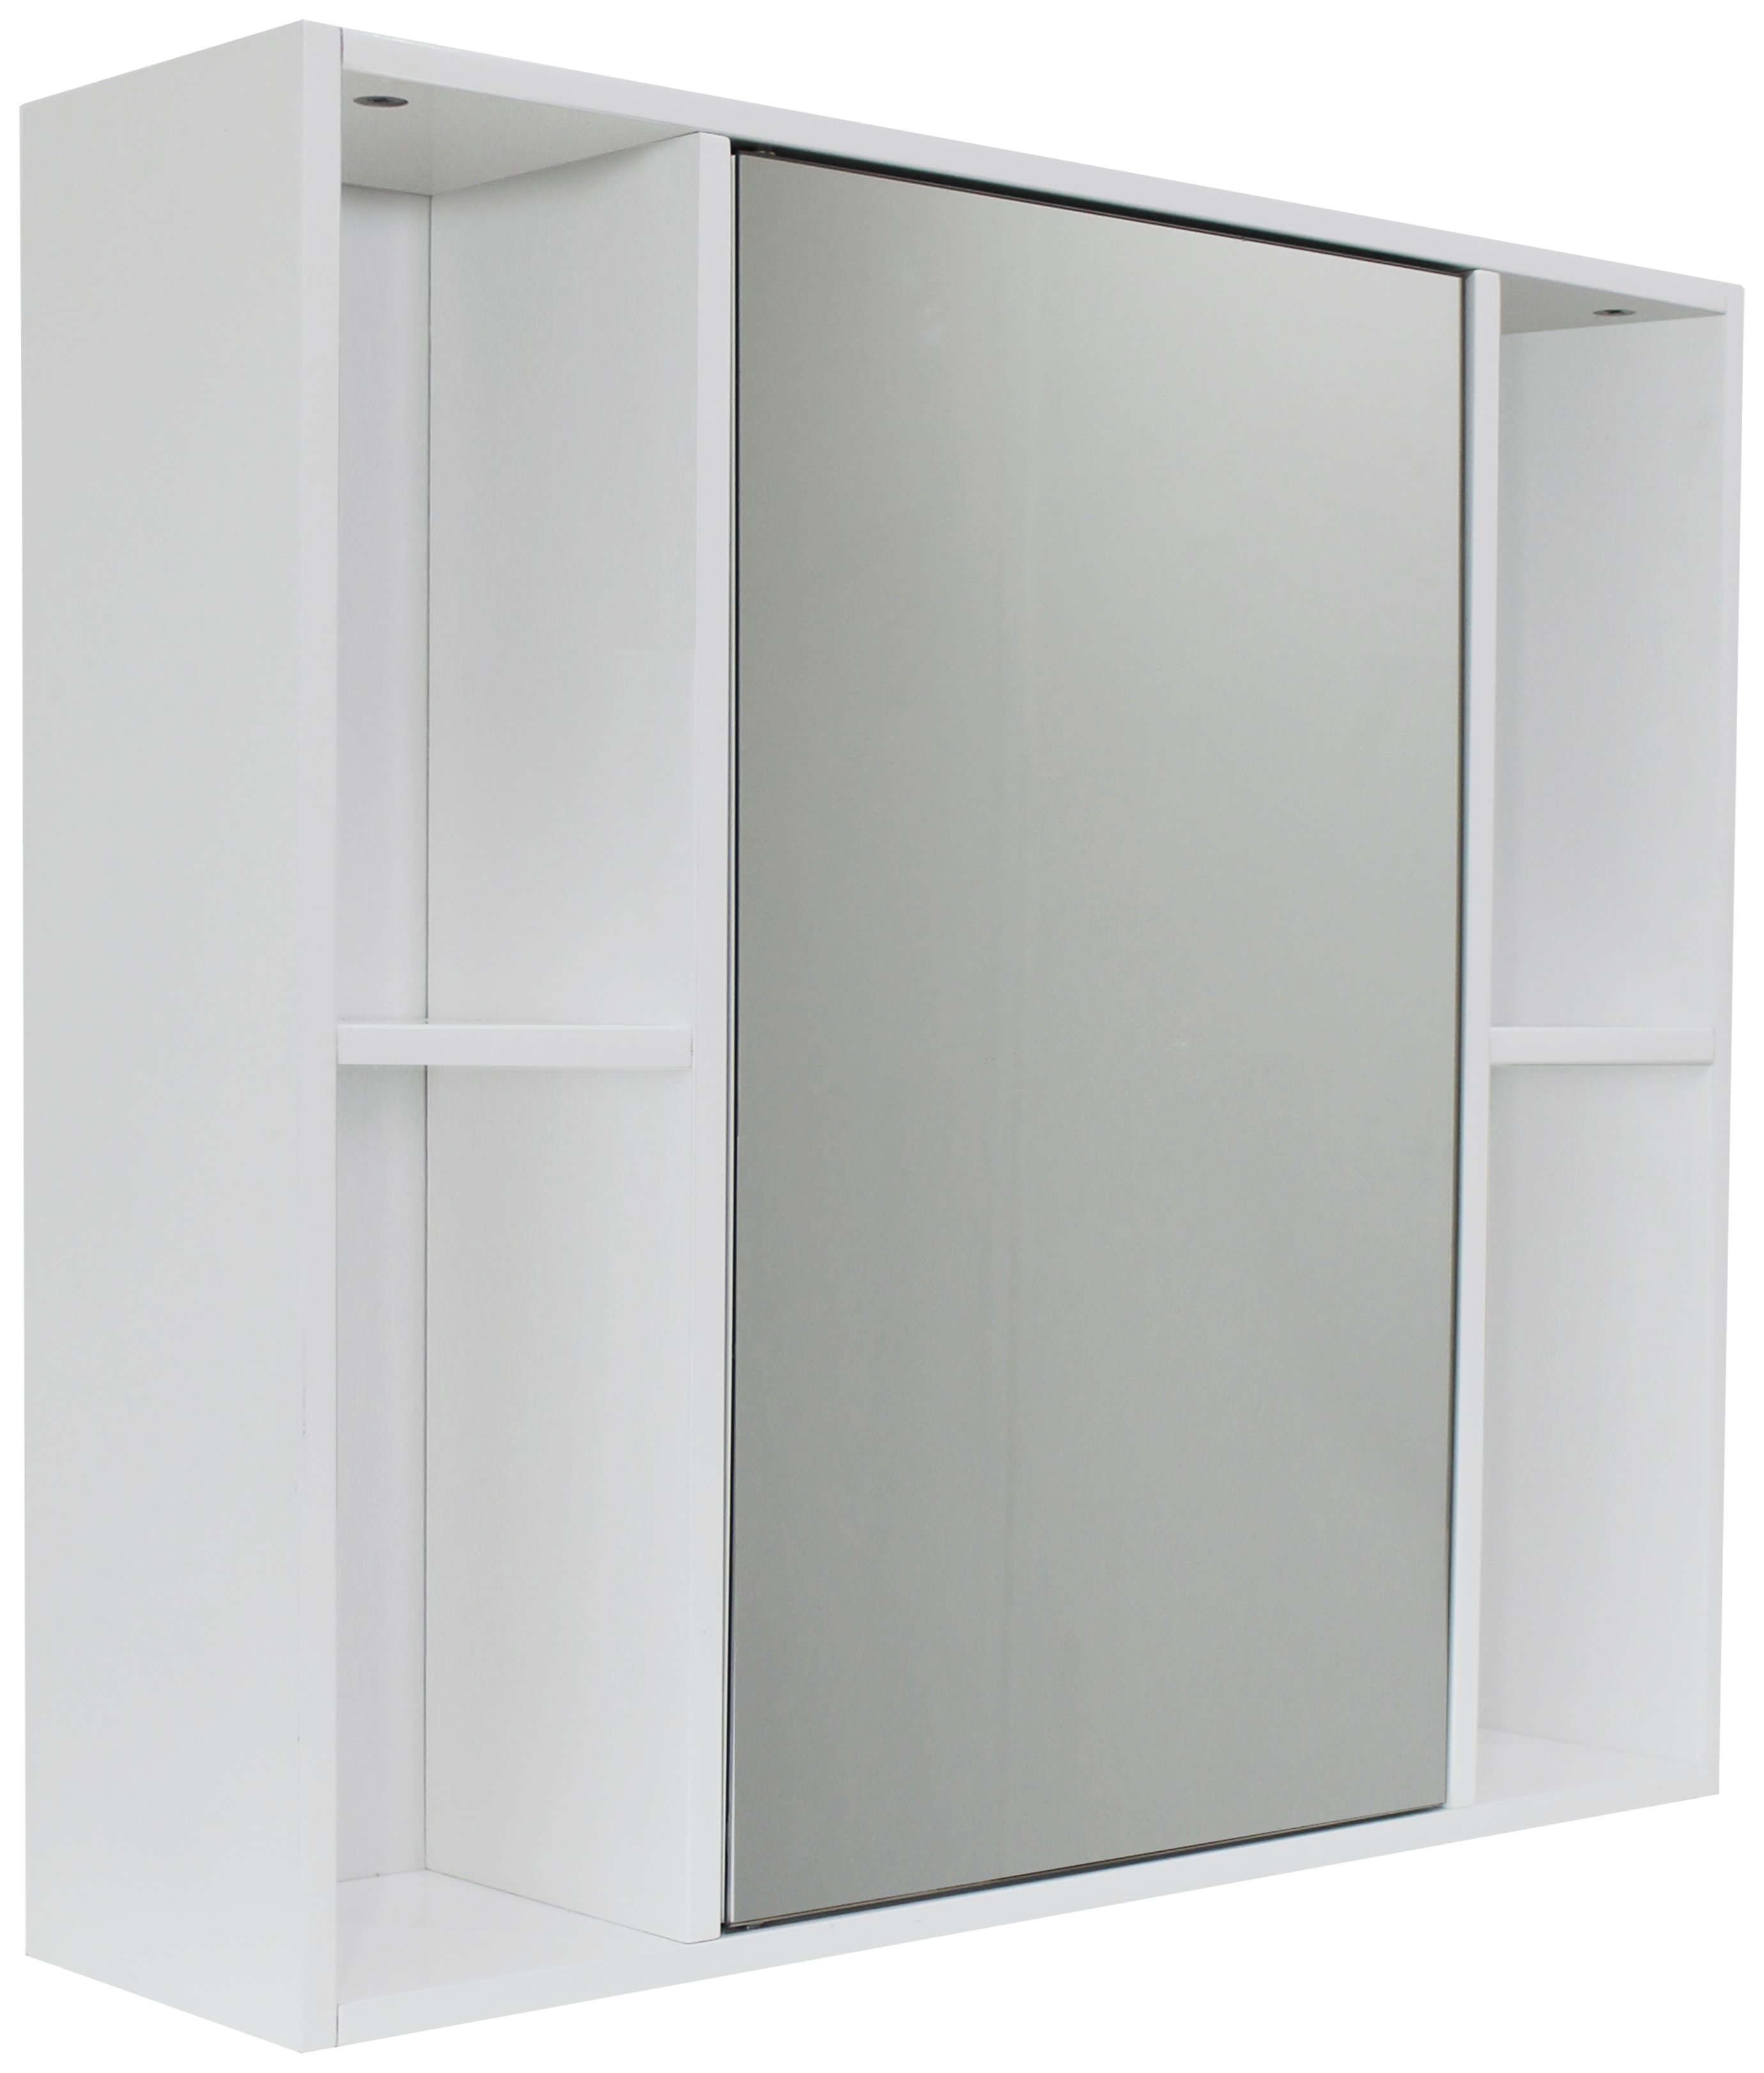 bathroom mirror cabinet argos. marvelous argos full length mirror